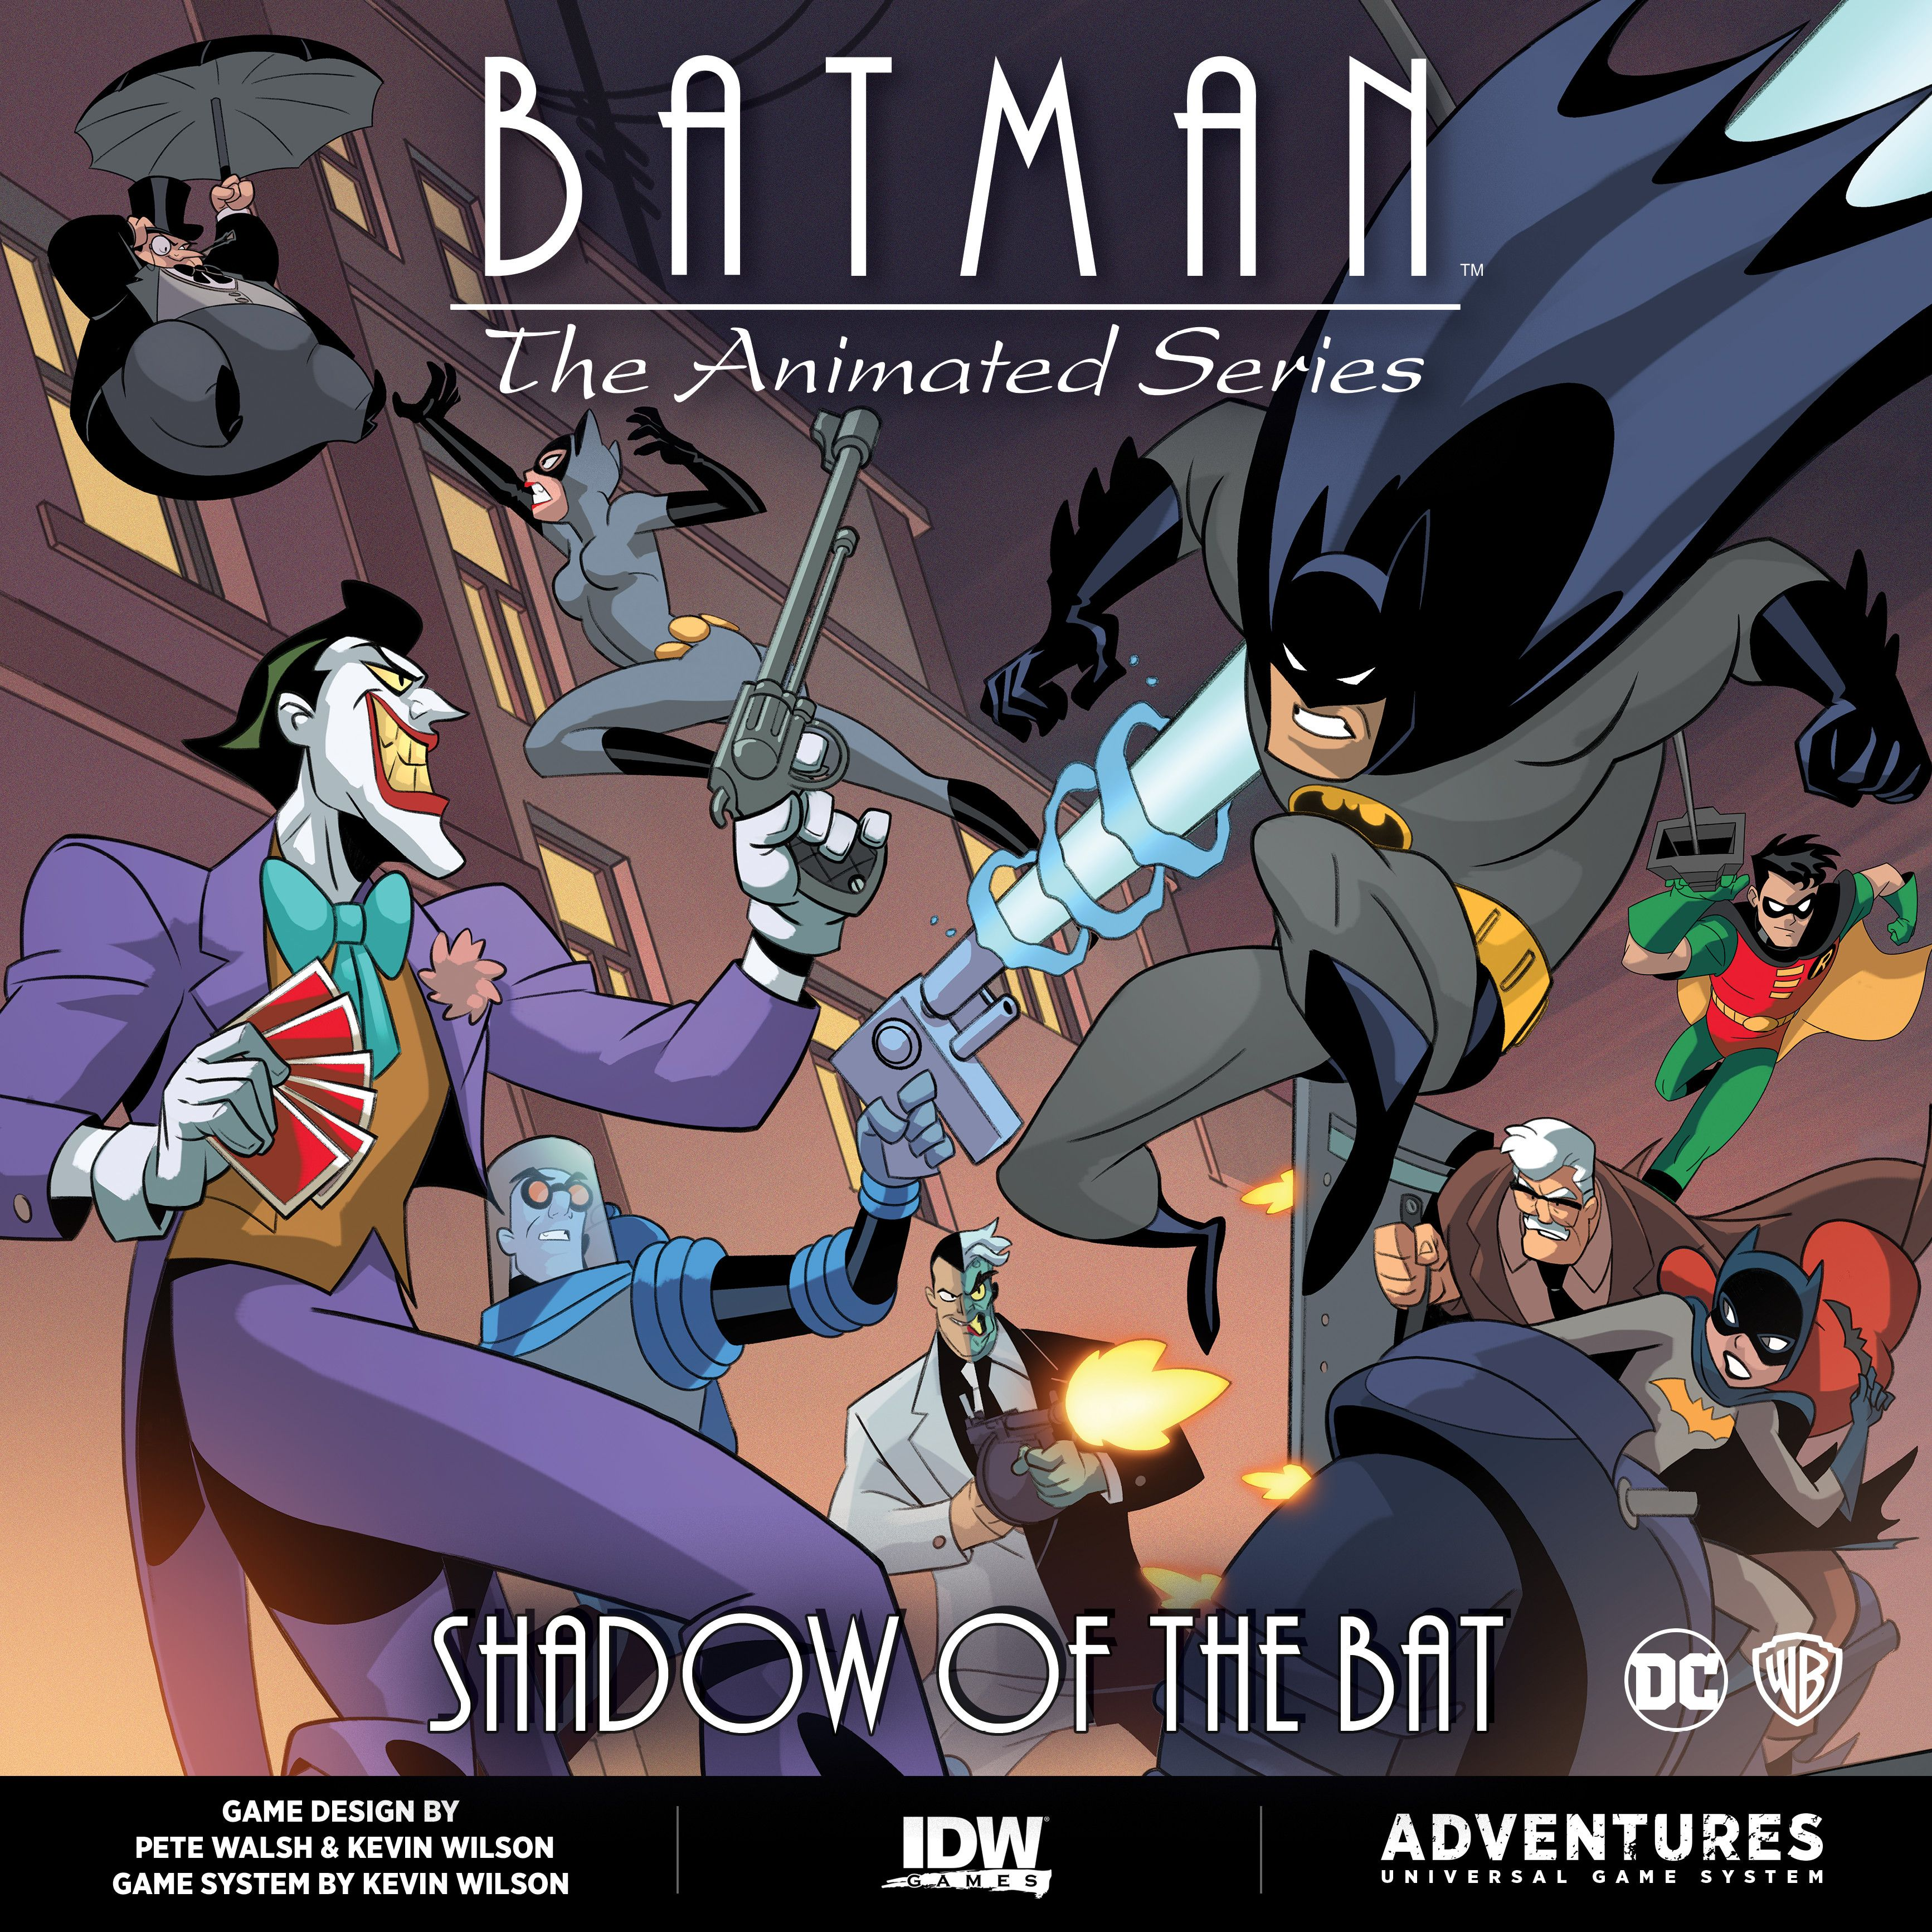 Batman: The Animated Series Adventures – Shadow of the Bat